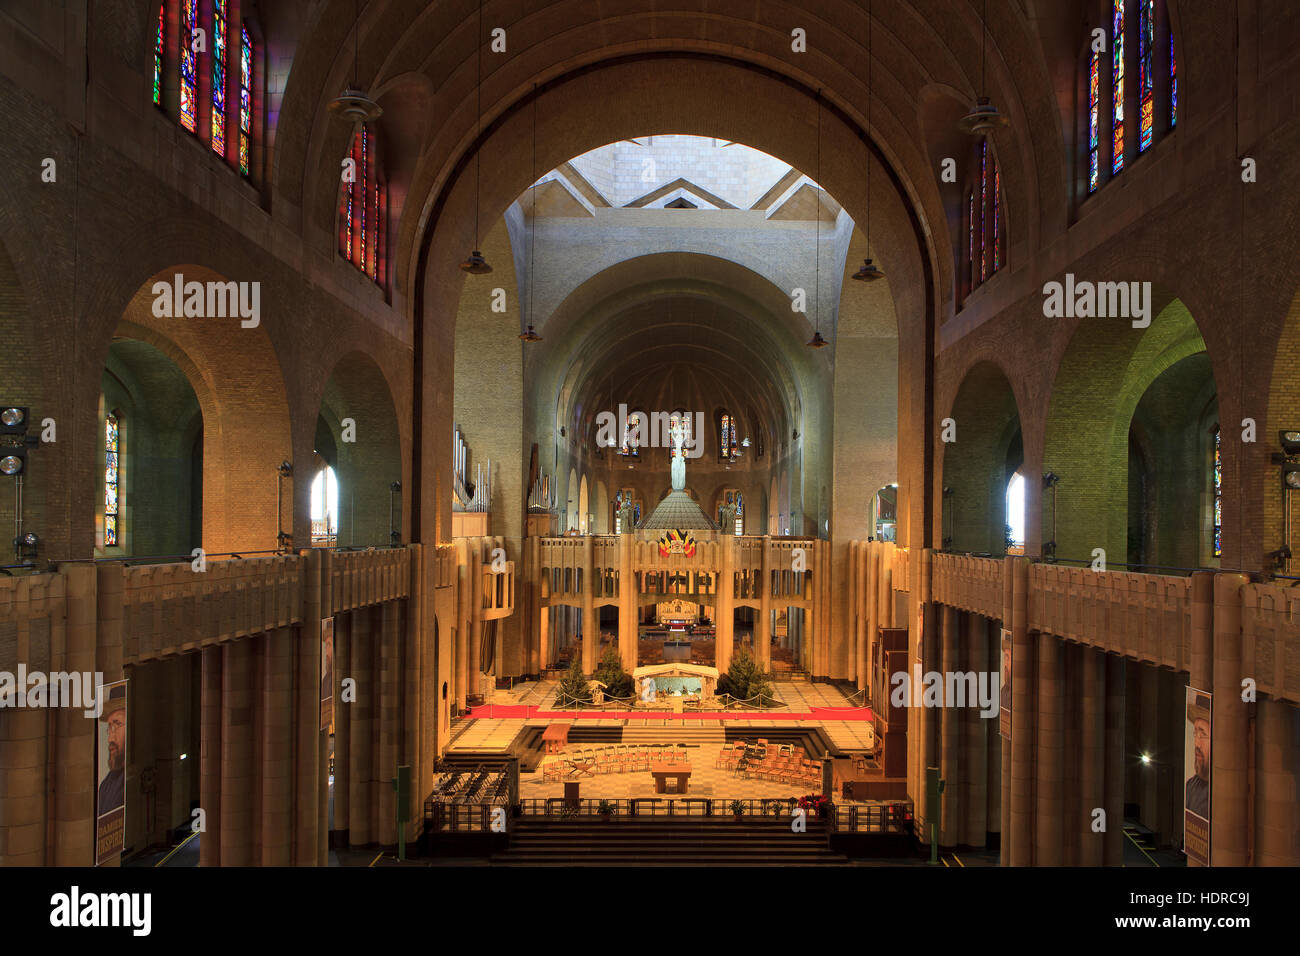 The central nave of the Basilica of the Sacred Heart (1935) in Brussels, Belgium - Stock Image